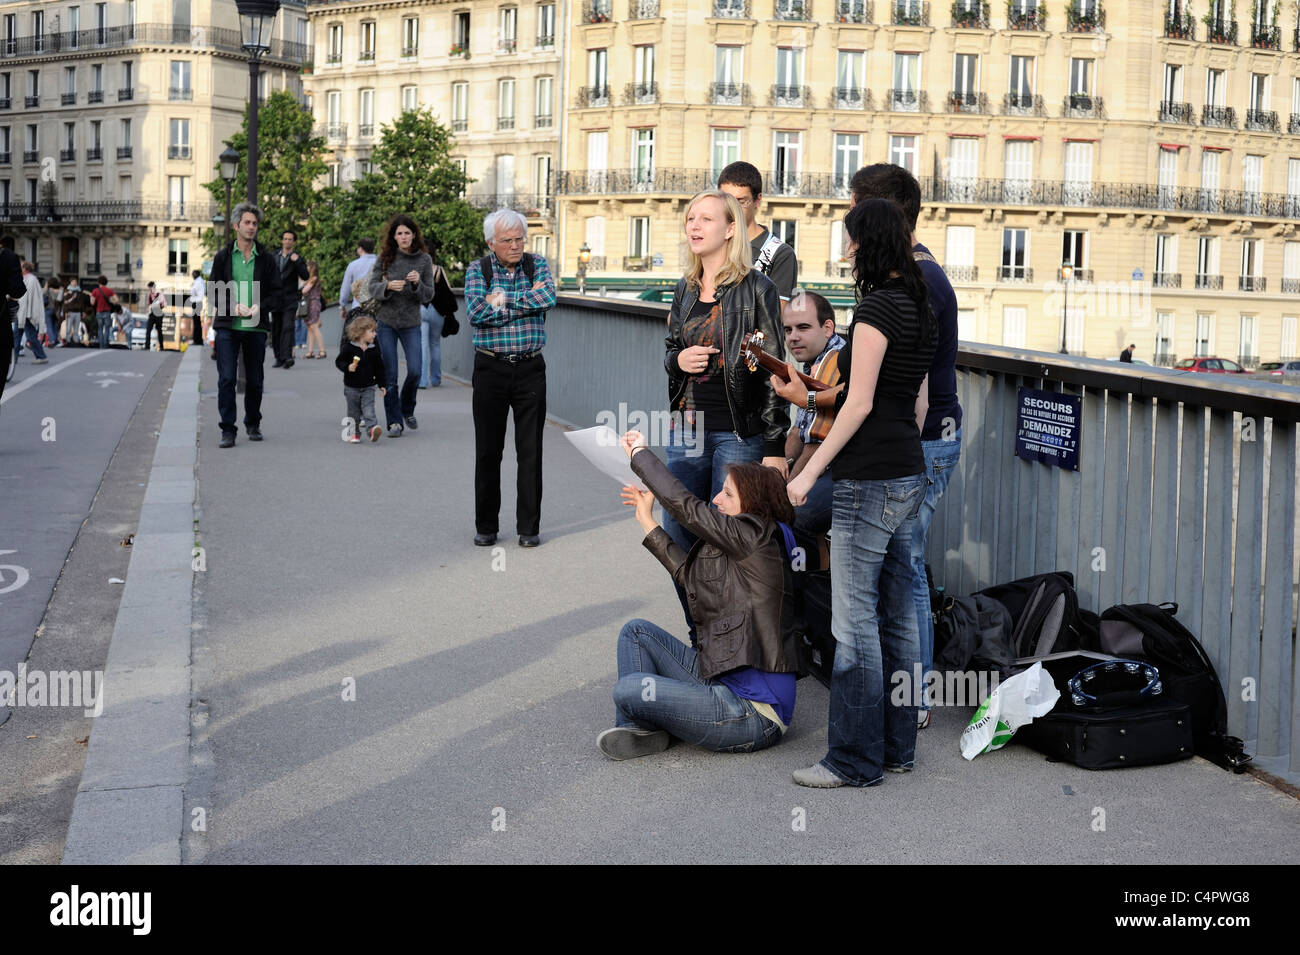 Paris France, fete de la musique paris, World Music Day in ILe Saint Louis - Stock Image